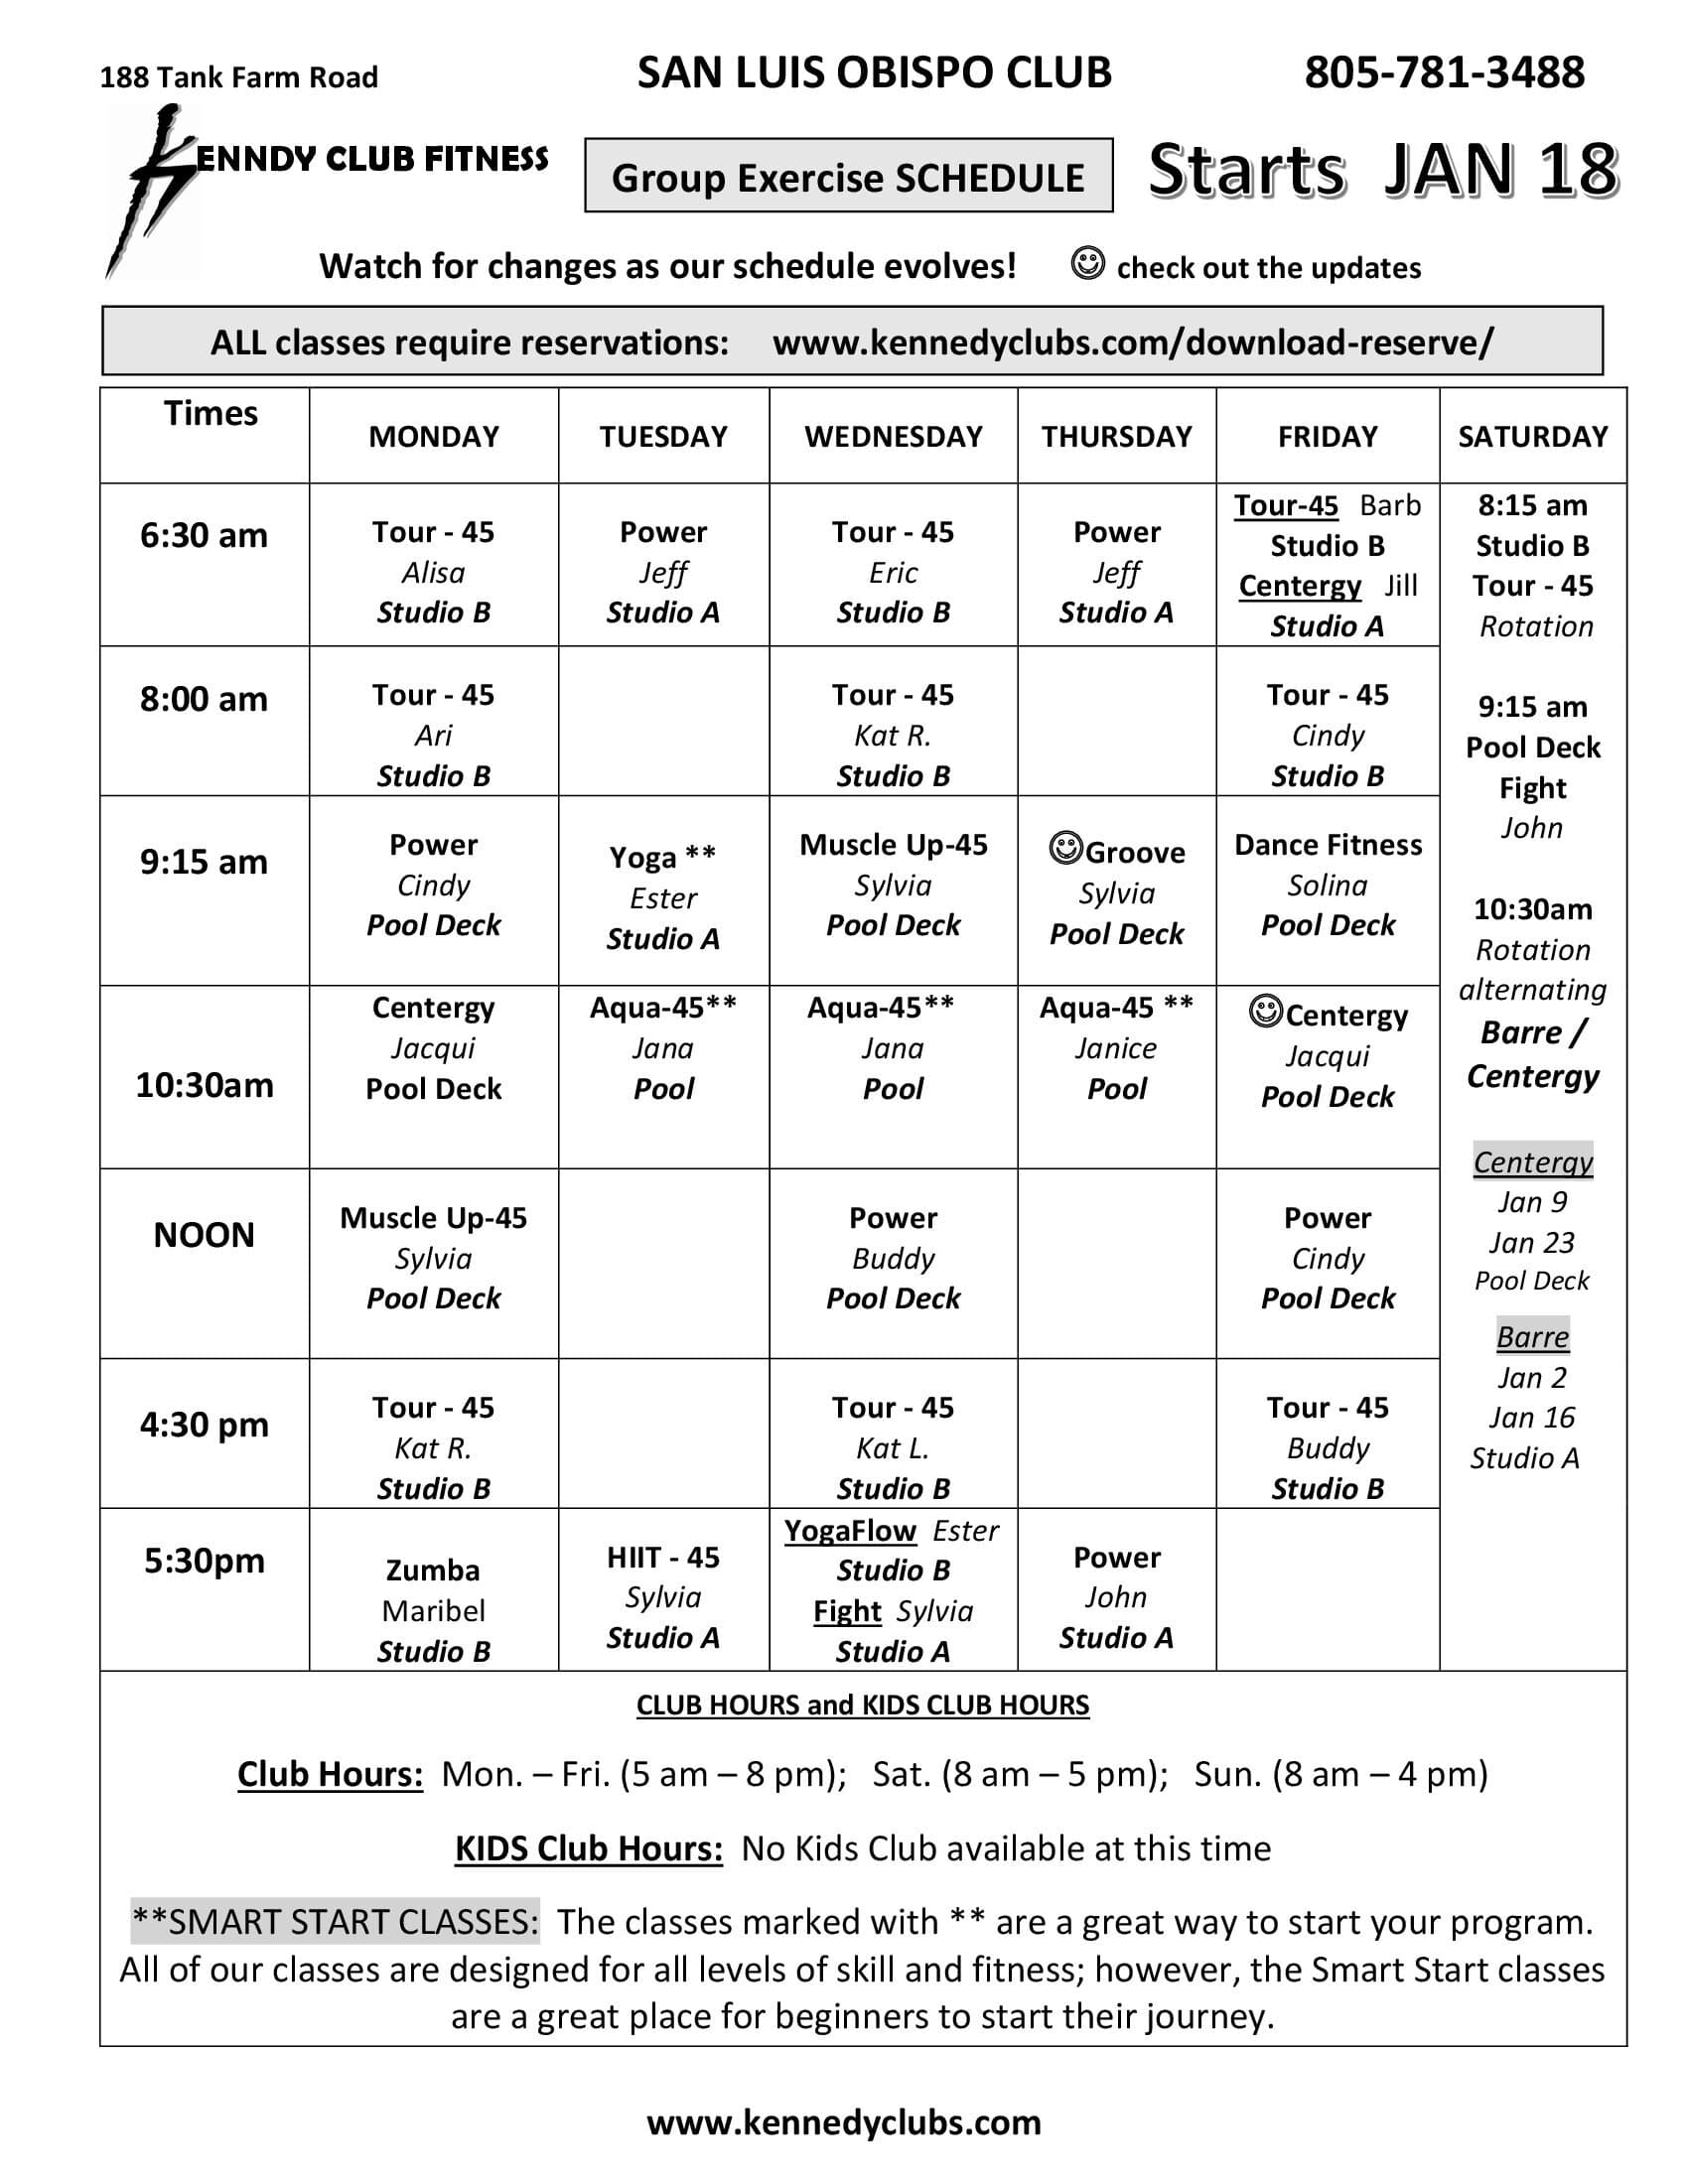 Kennedy Club Fitness San Luis Obispo Group Exercise Schedule 01 18 2021